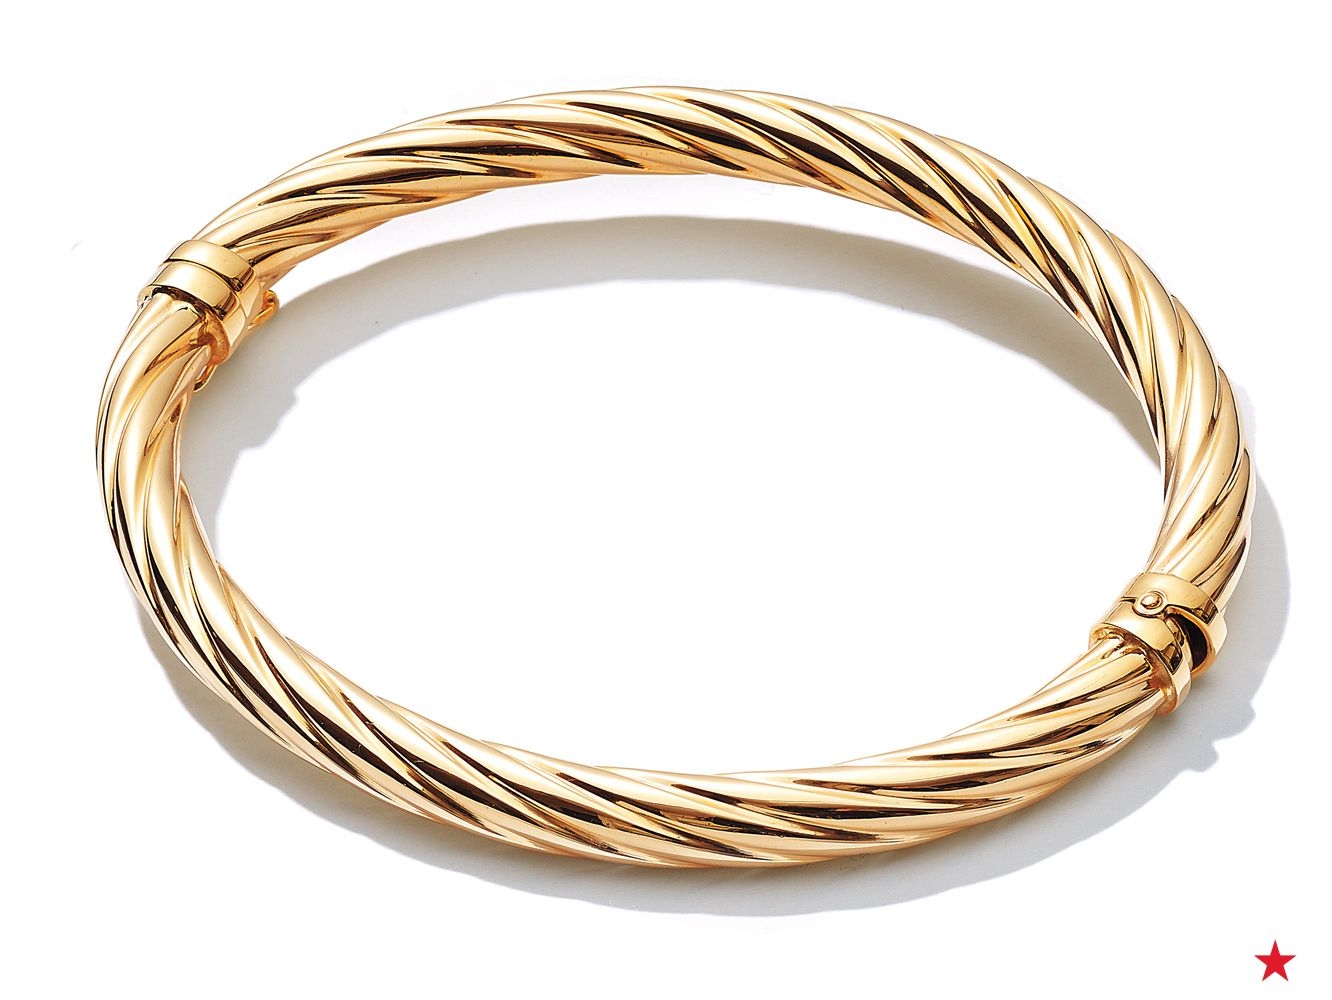 bar plated products gold jewelree karat bangles knot bangle bracelets flex tube